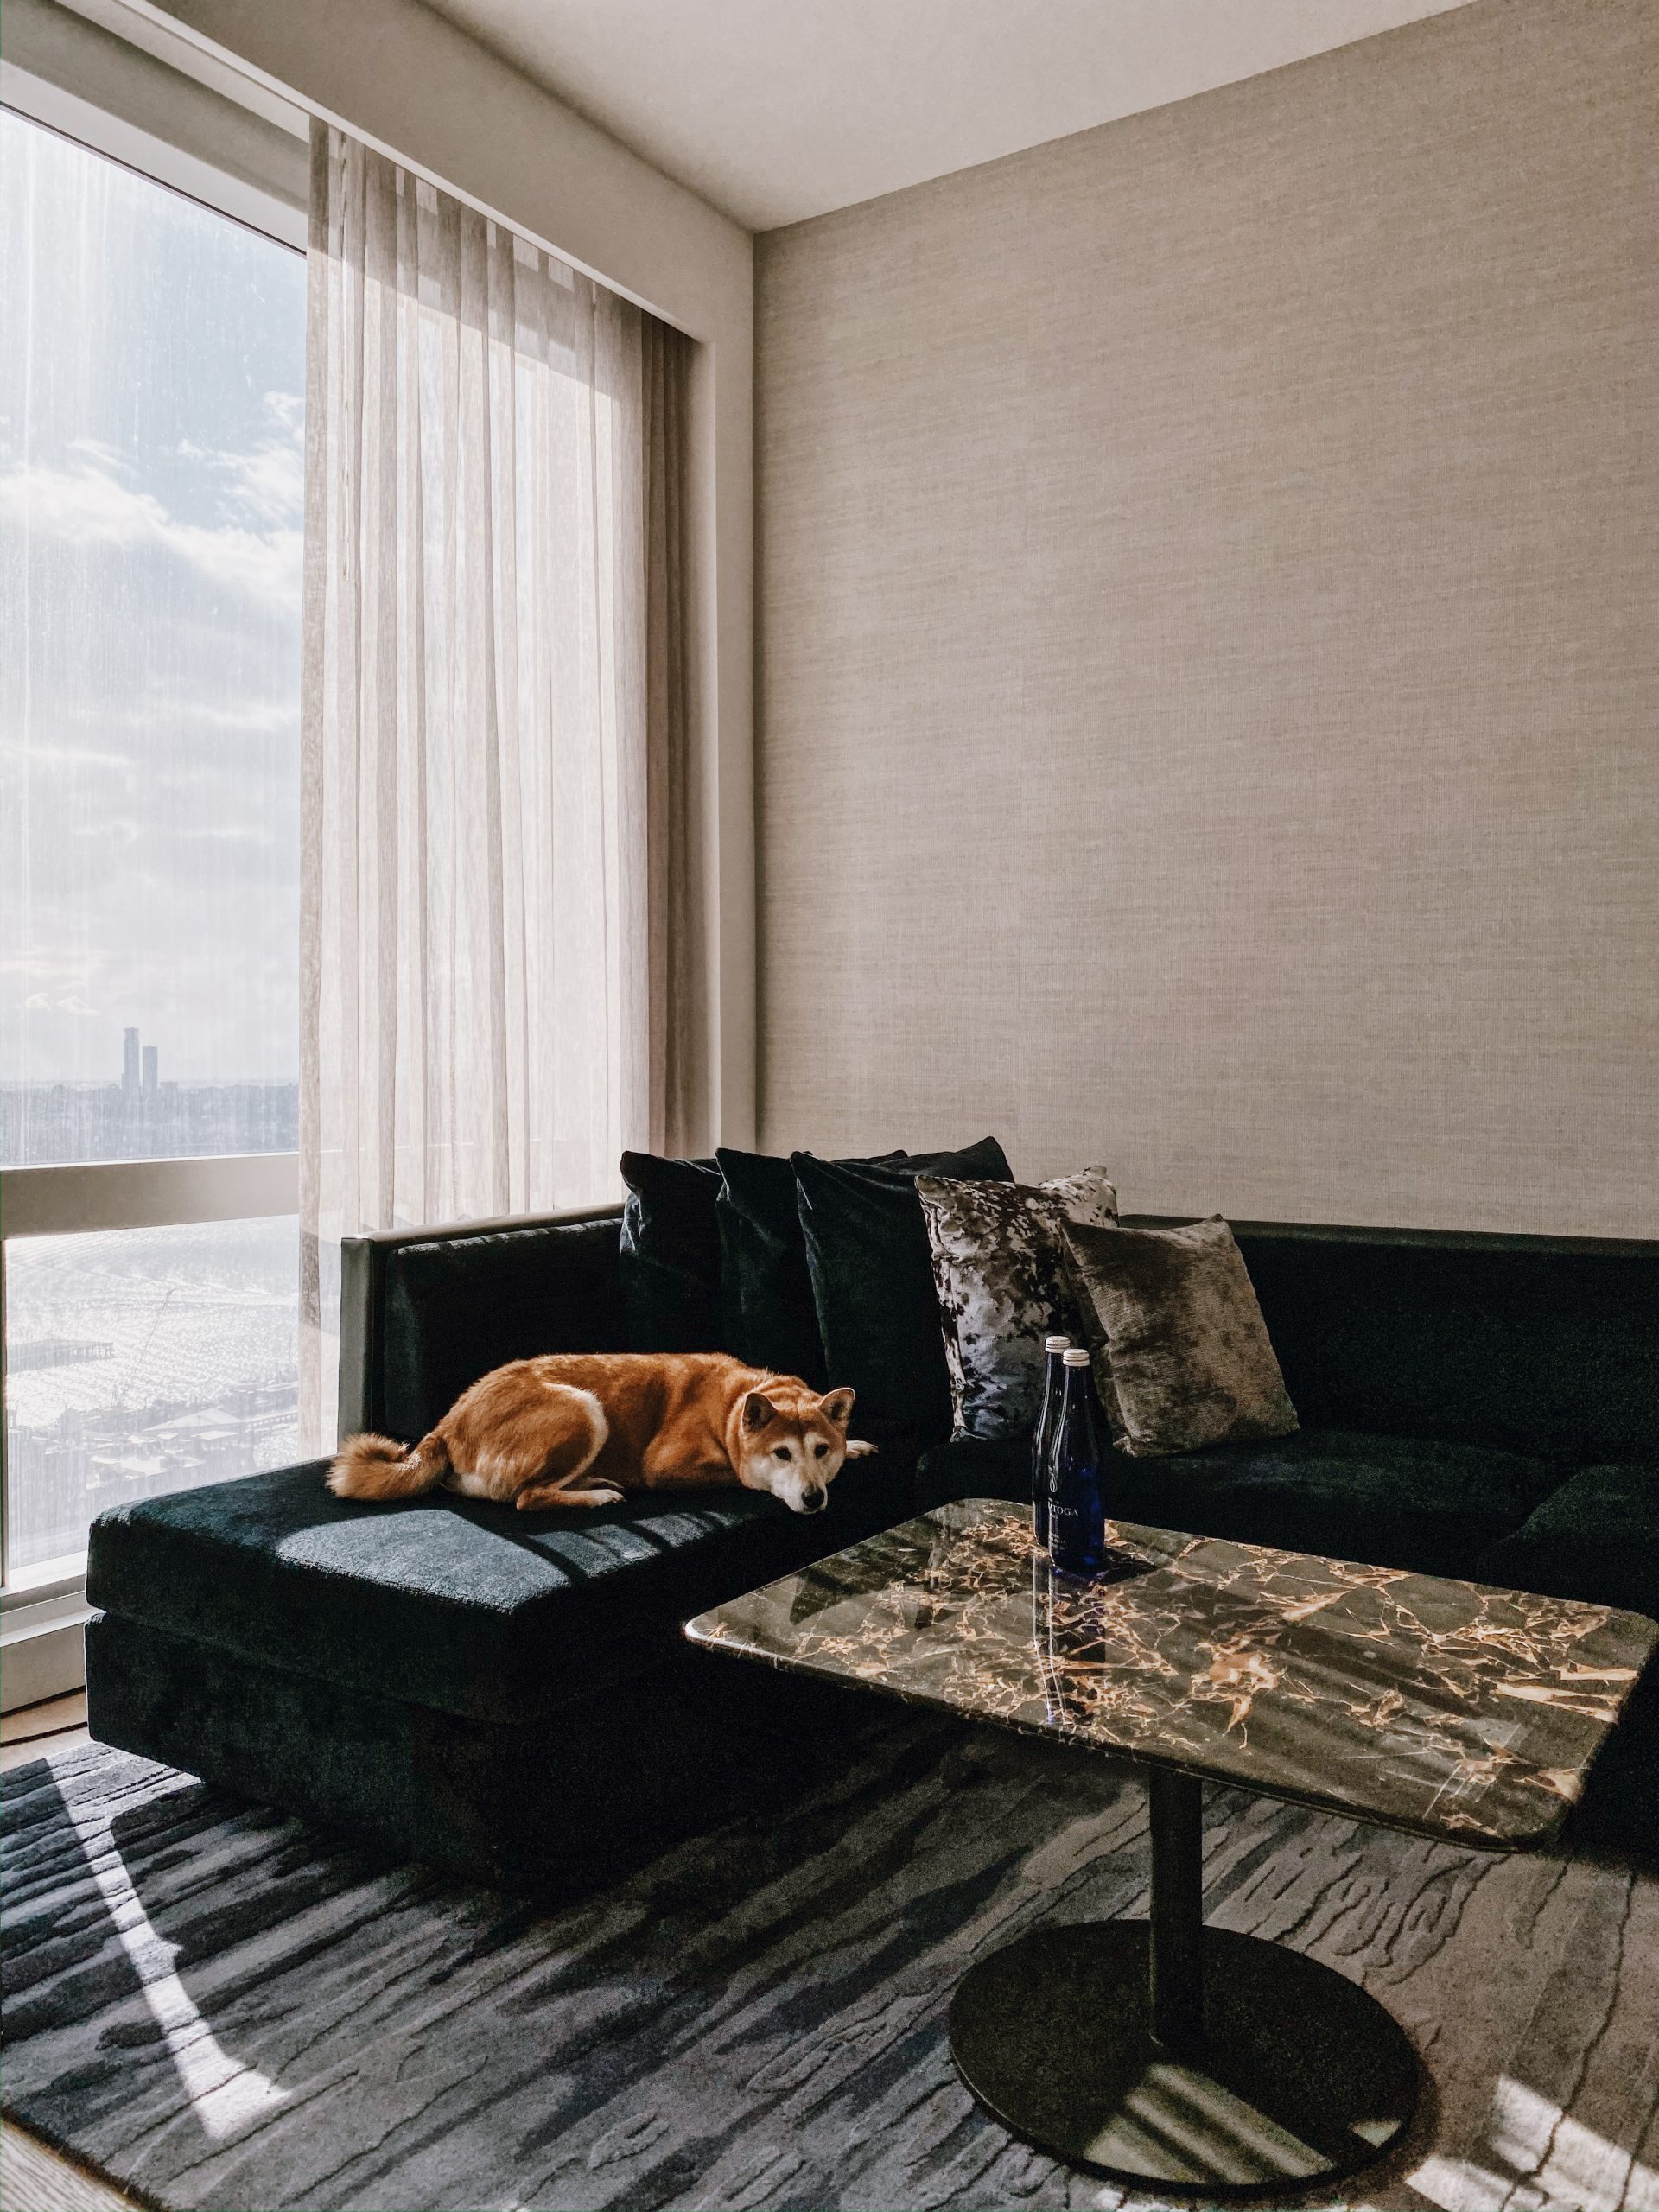 dog curled up on sofa in front of window with river view in junior suite